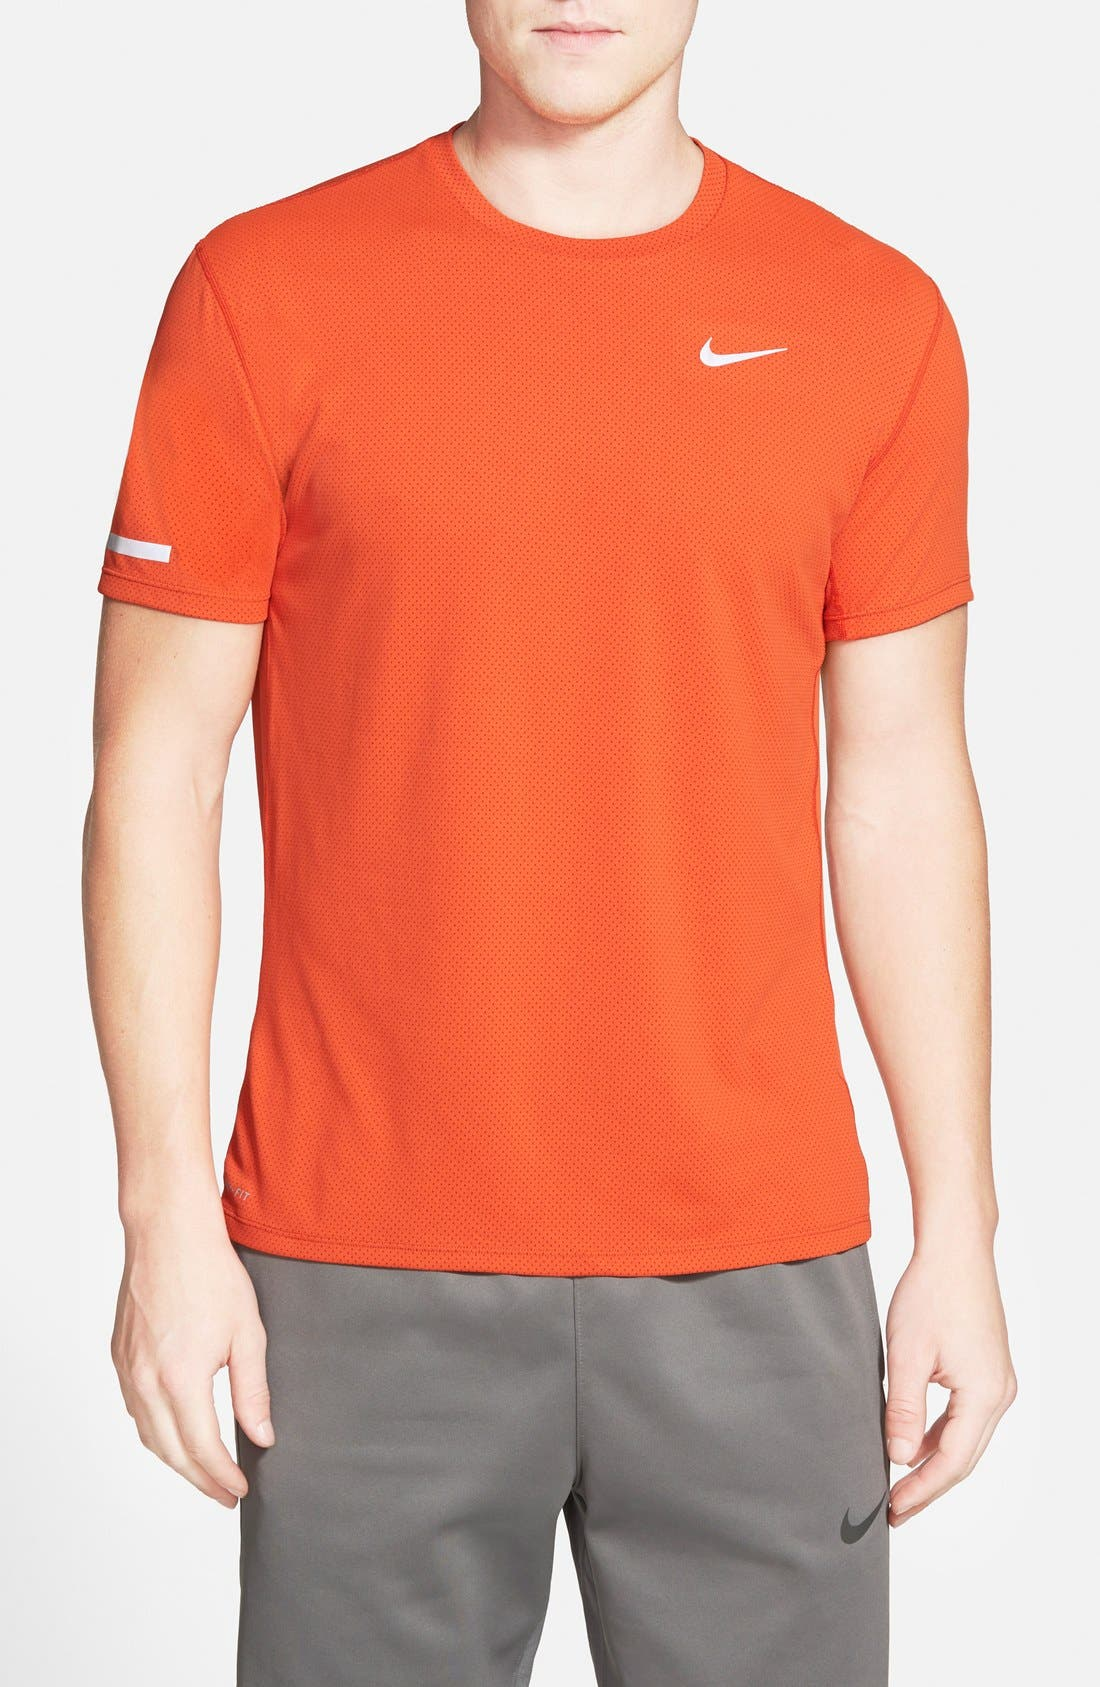 'Contour' Mesh Dri-FIT Running T-Shirt,                             Main thumbnail 7, color,